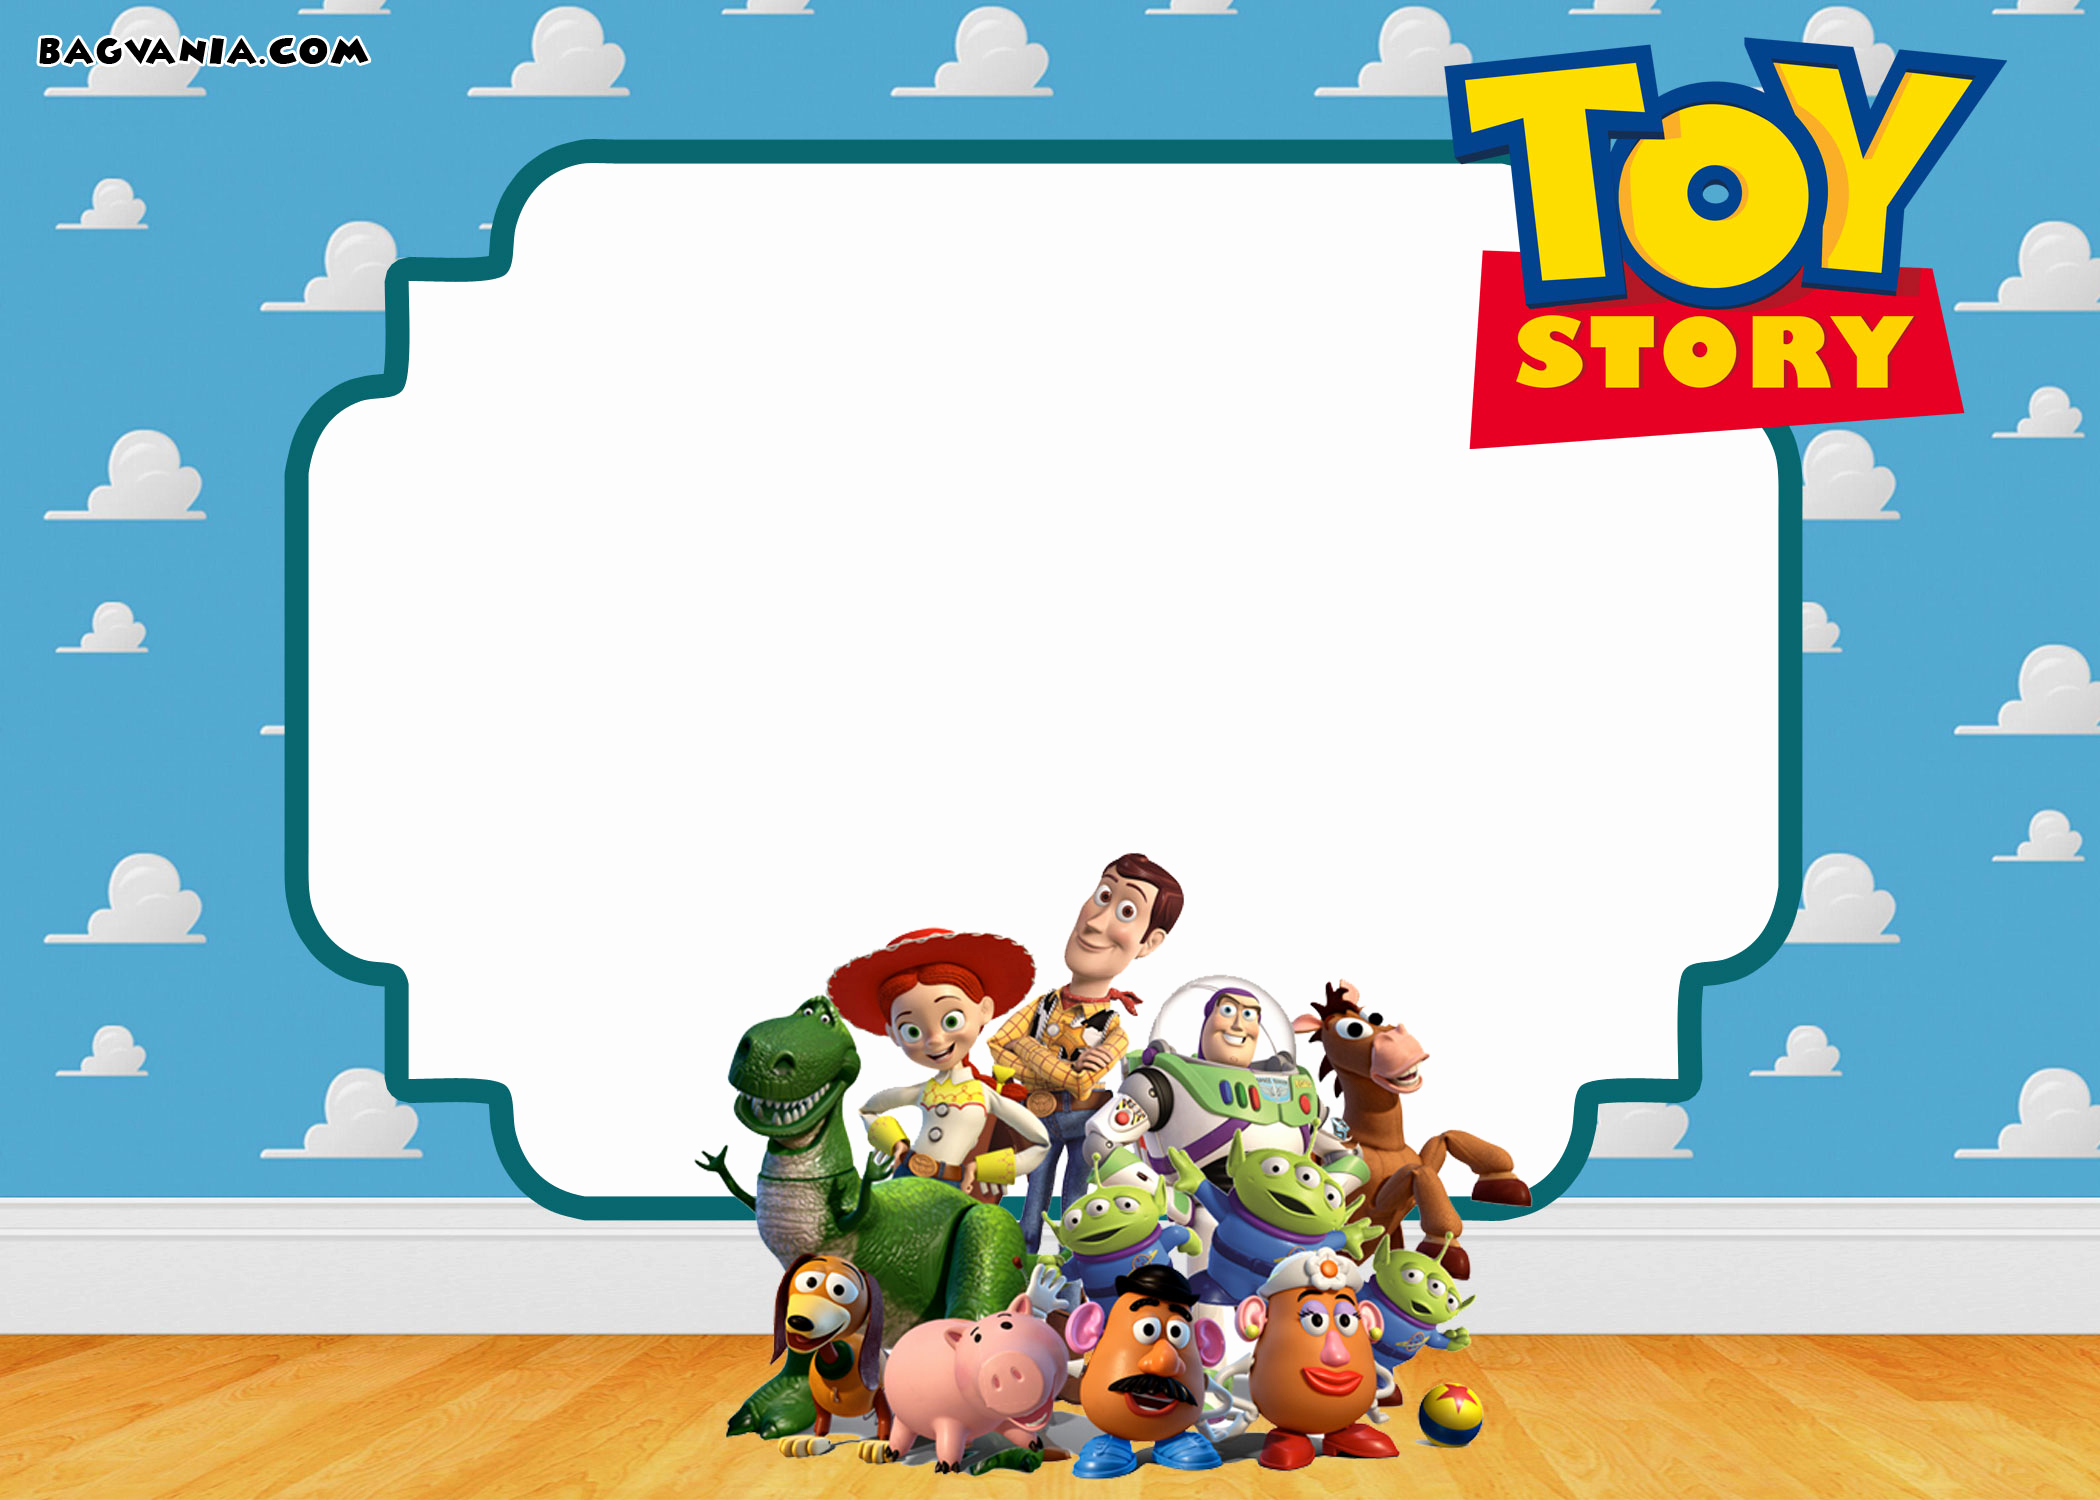 Free toy Story Invitation Template New Free Printable toy Story Birthday Invitations – Free